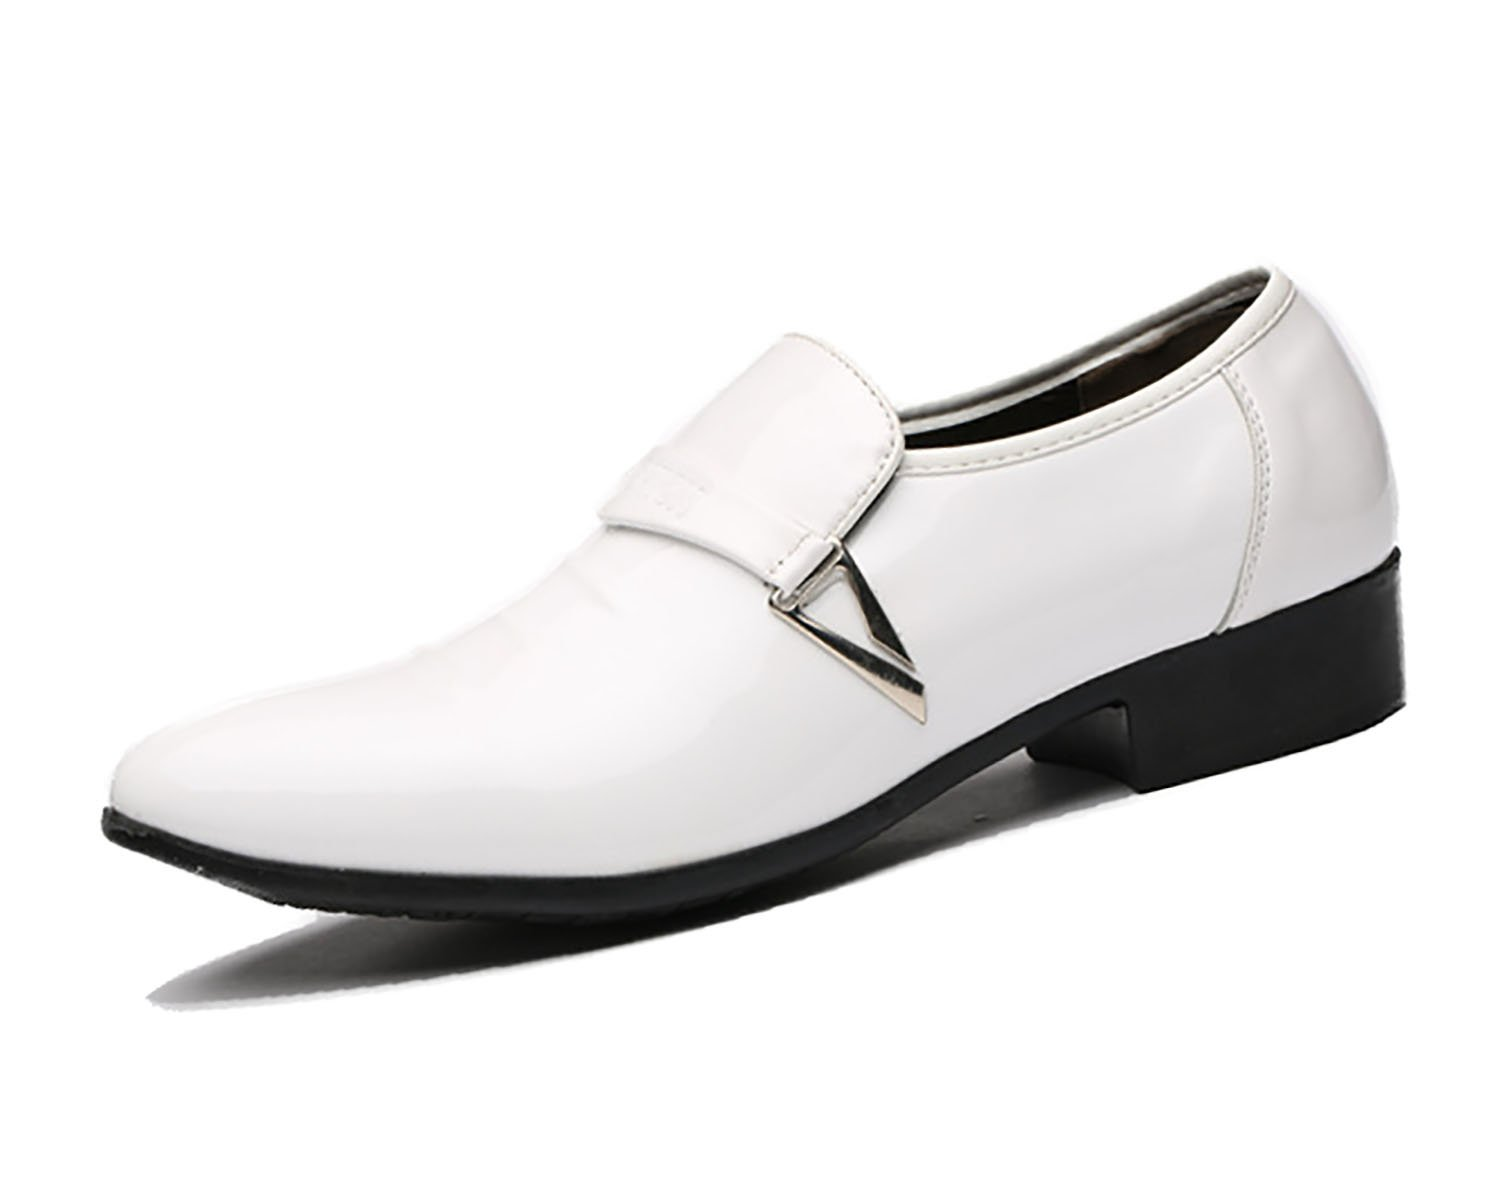 Zzhap Men's Pointed-Toe Tuxedo Dress Shoes Casual Slip-on Loafer White US 12